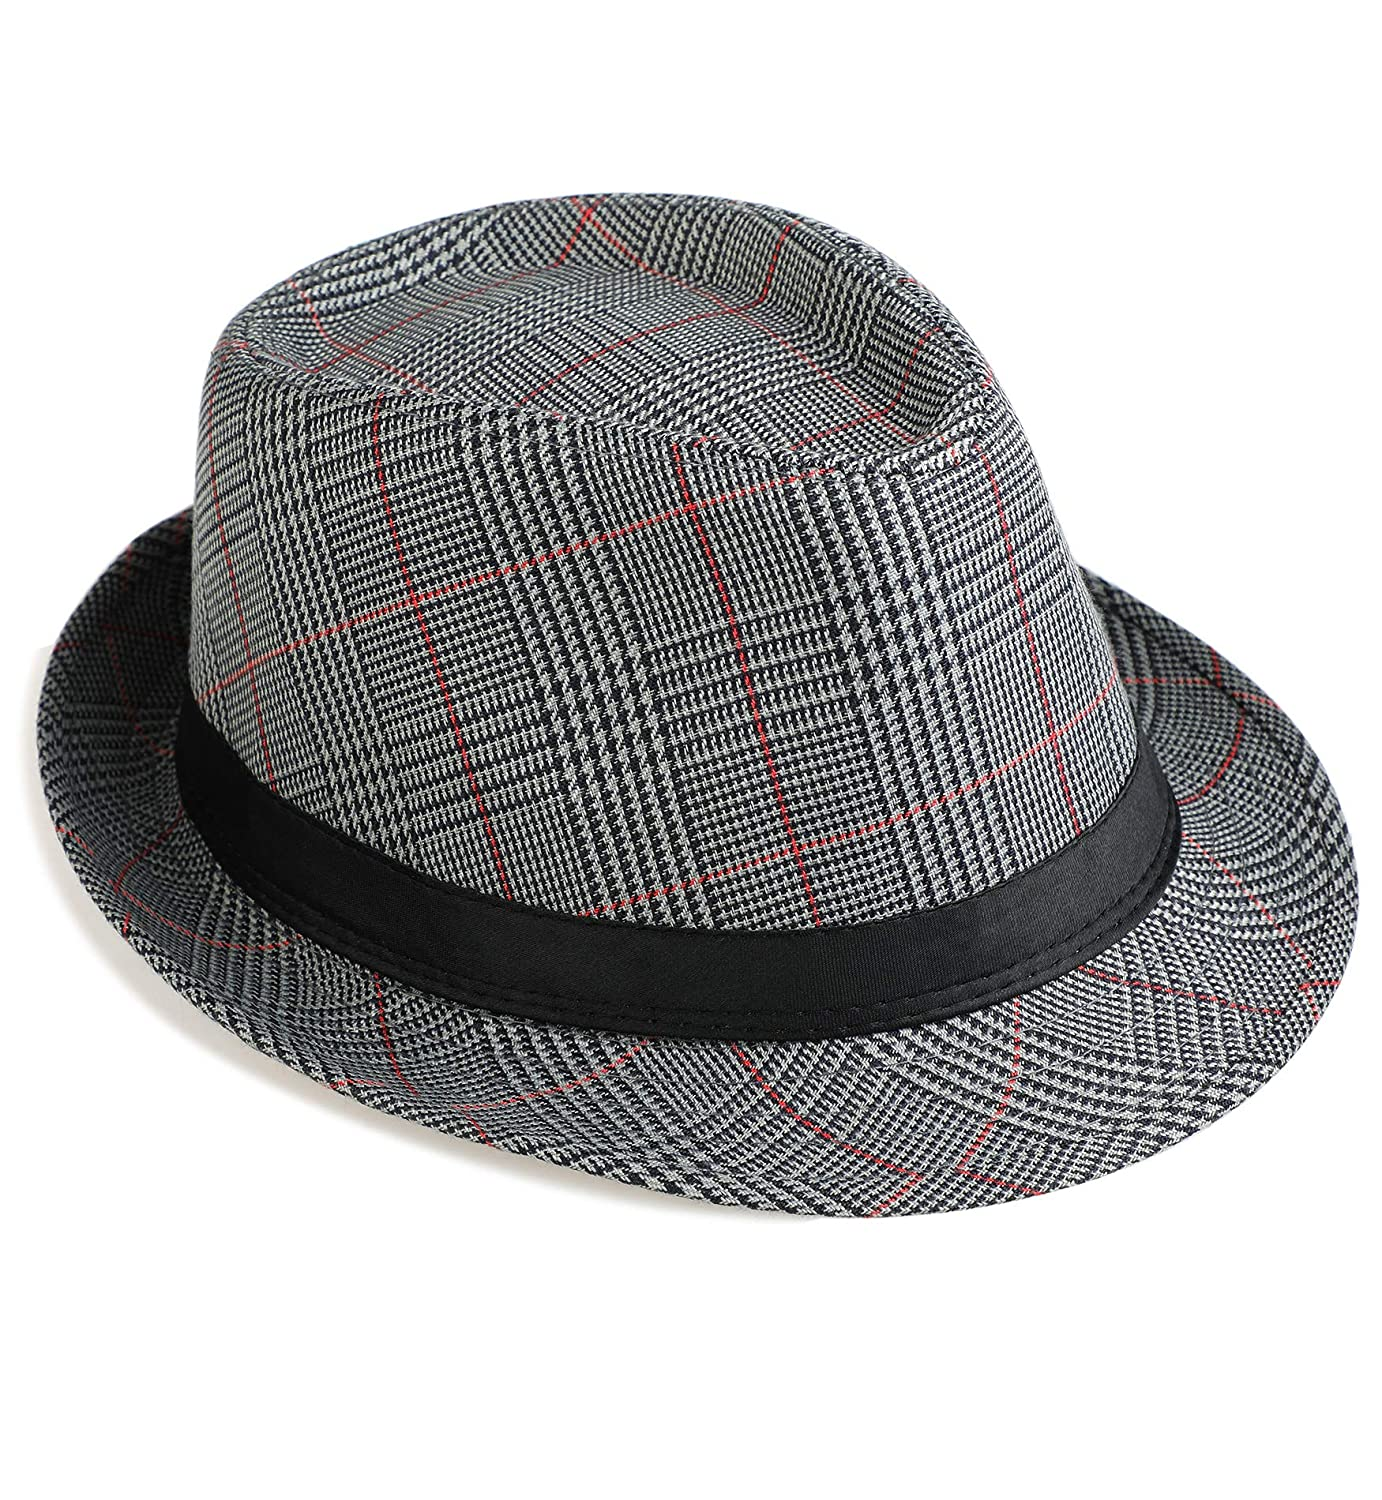 64d3c41f5d3d3 Amazon.com  Sumolux Mens Fedora Hat Hat Band British Style Light Weight  Panama Cap Winter Autumn  Sports   Outdoors